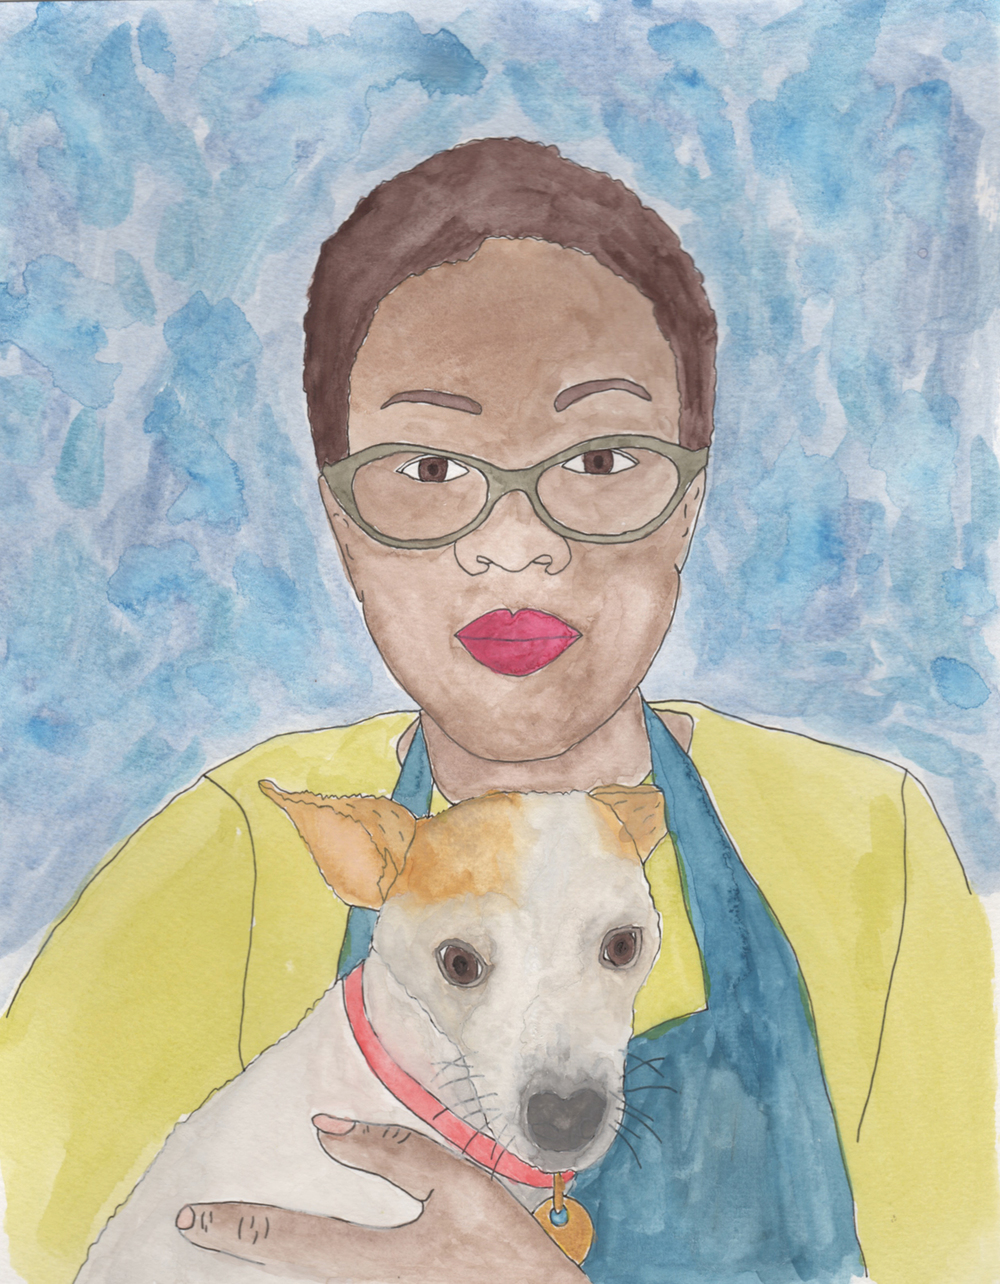 custom portrait illustration jen hewett watercolor nicole stevenson studio.jpg